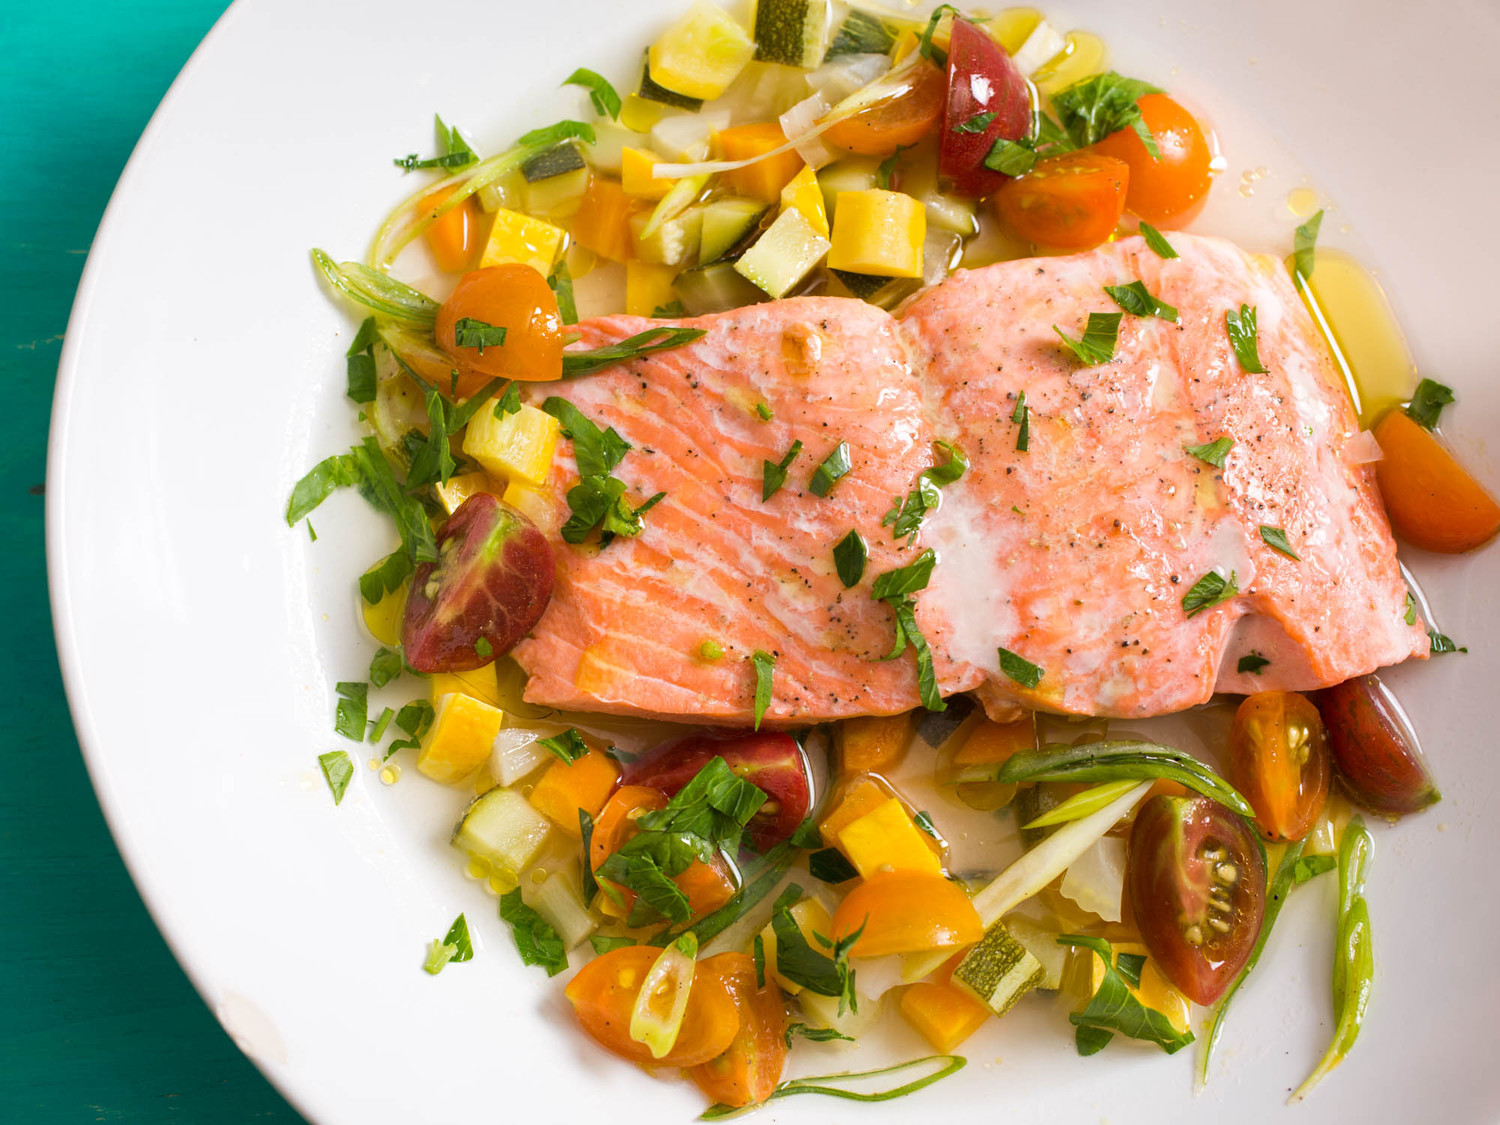 Side Dishes For Salmon  What to Eat With Salmon Tried and True Side Dishes for a